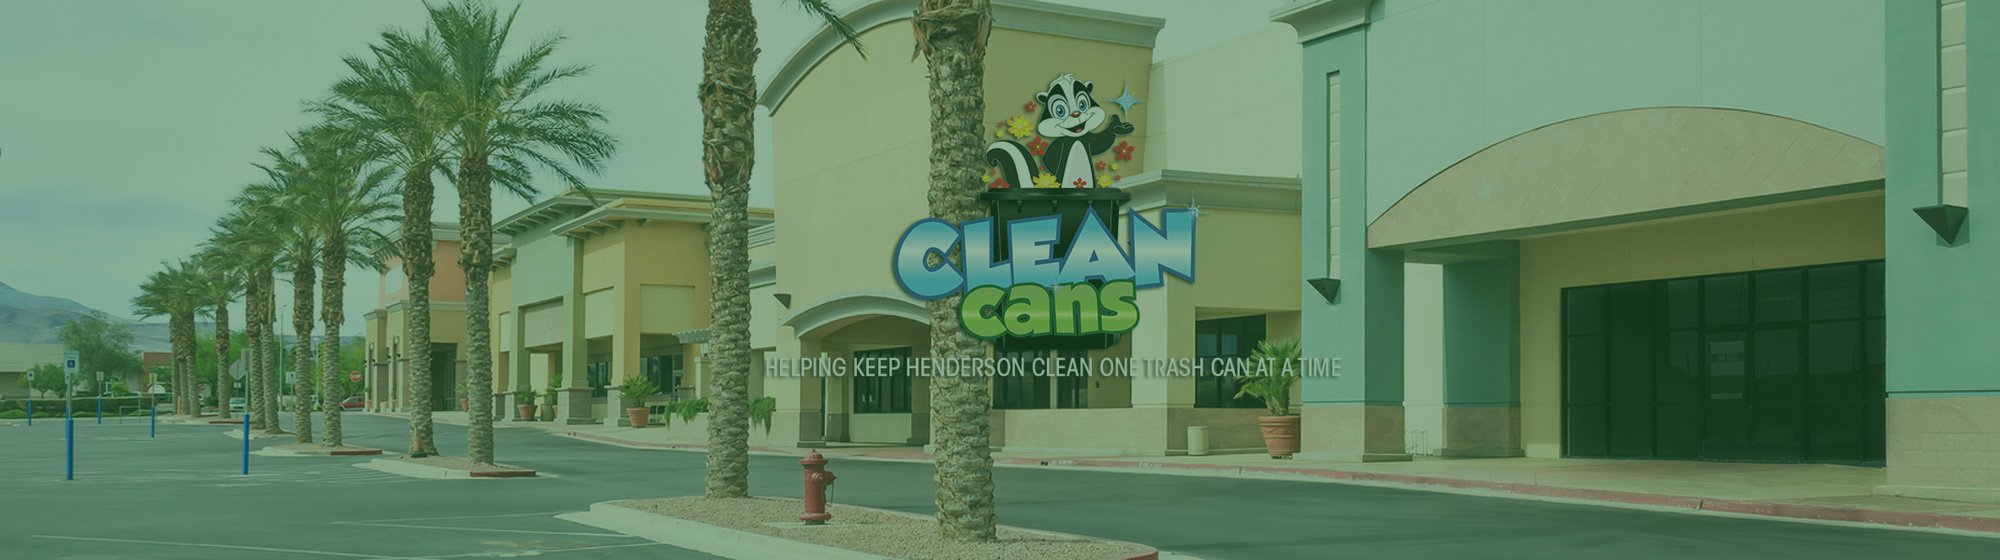 Clean Cans logo with a shopping complex in the background with a green tint